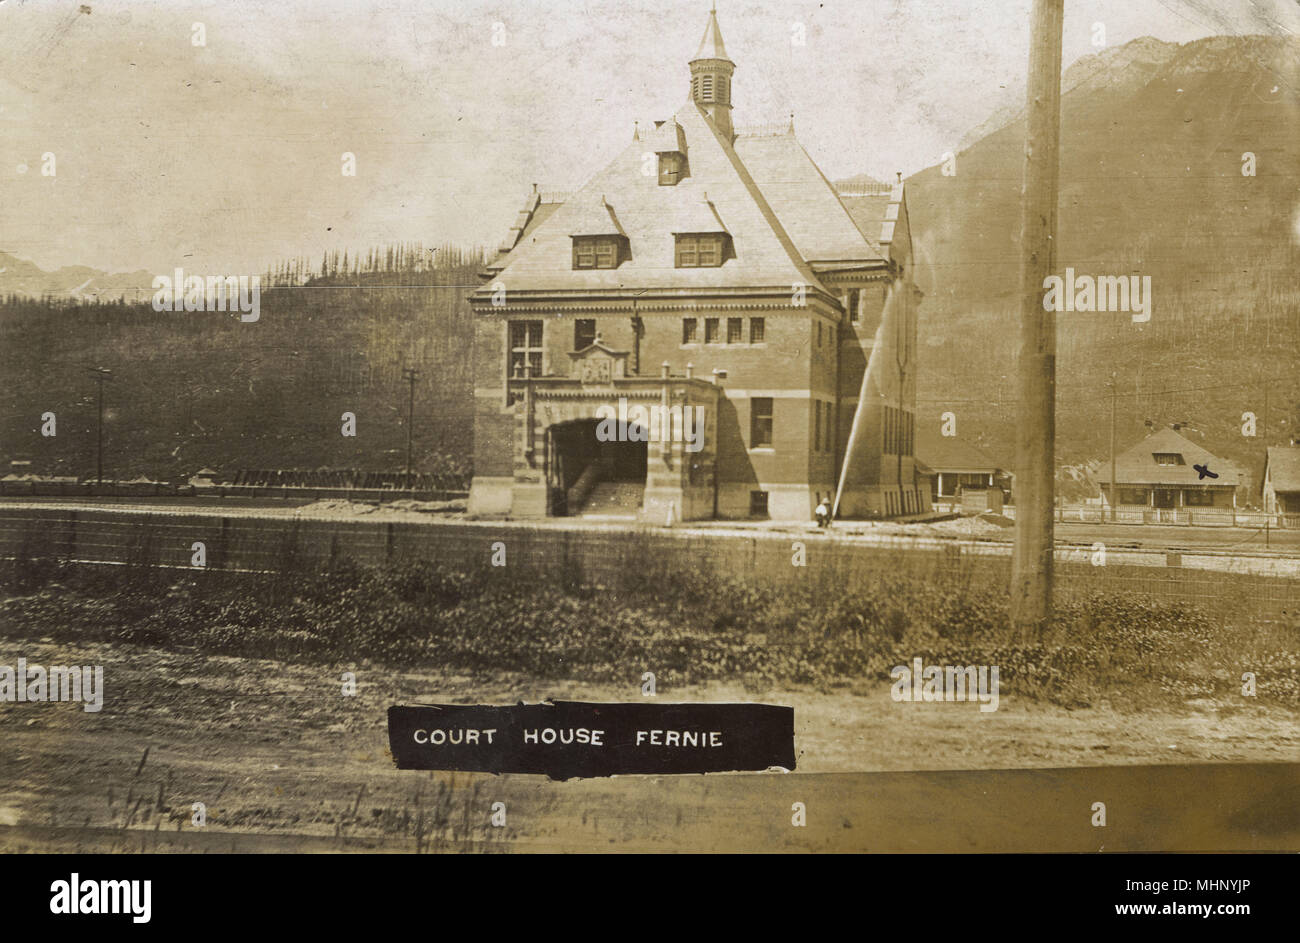 Court house at Fernie, British Columbia, Canada.      Date: circa 1908 - Stock Image